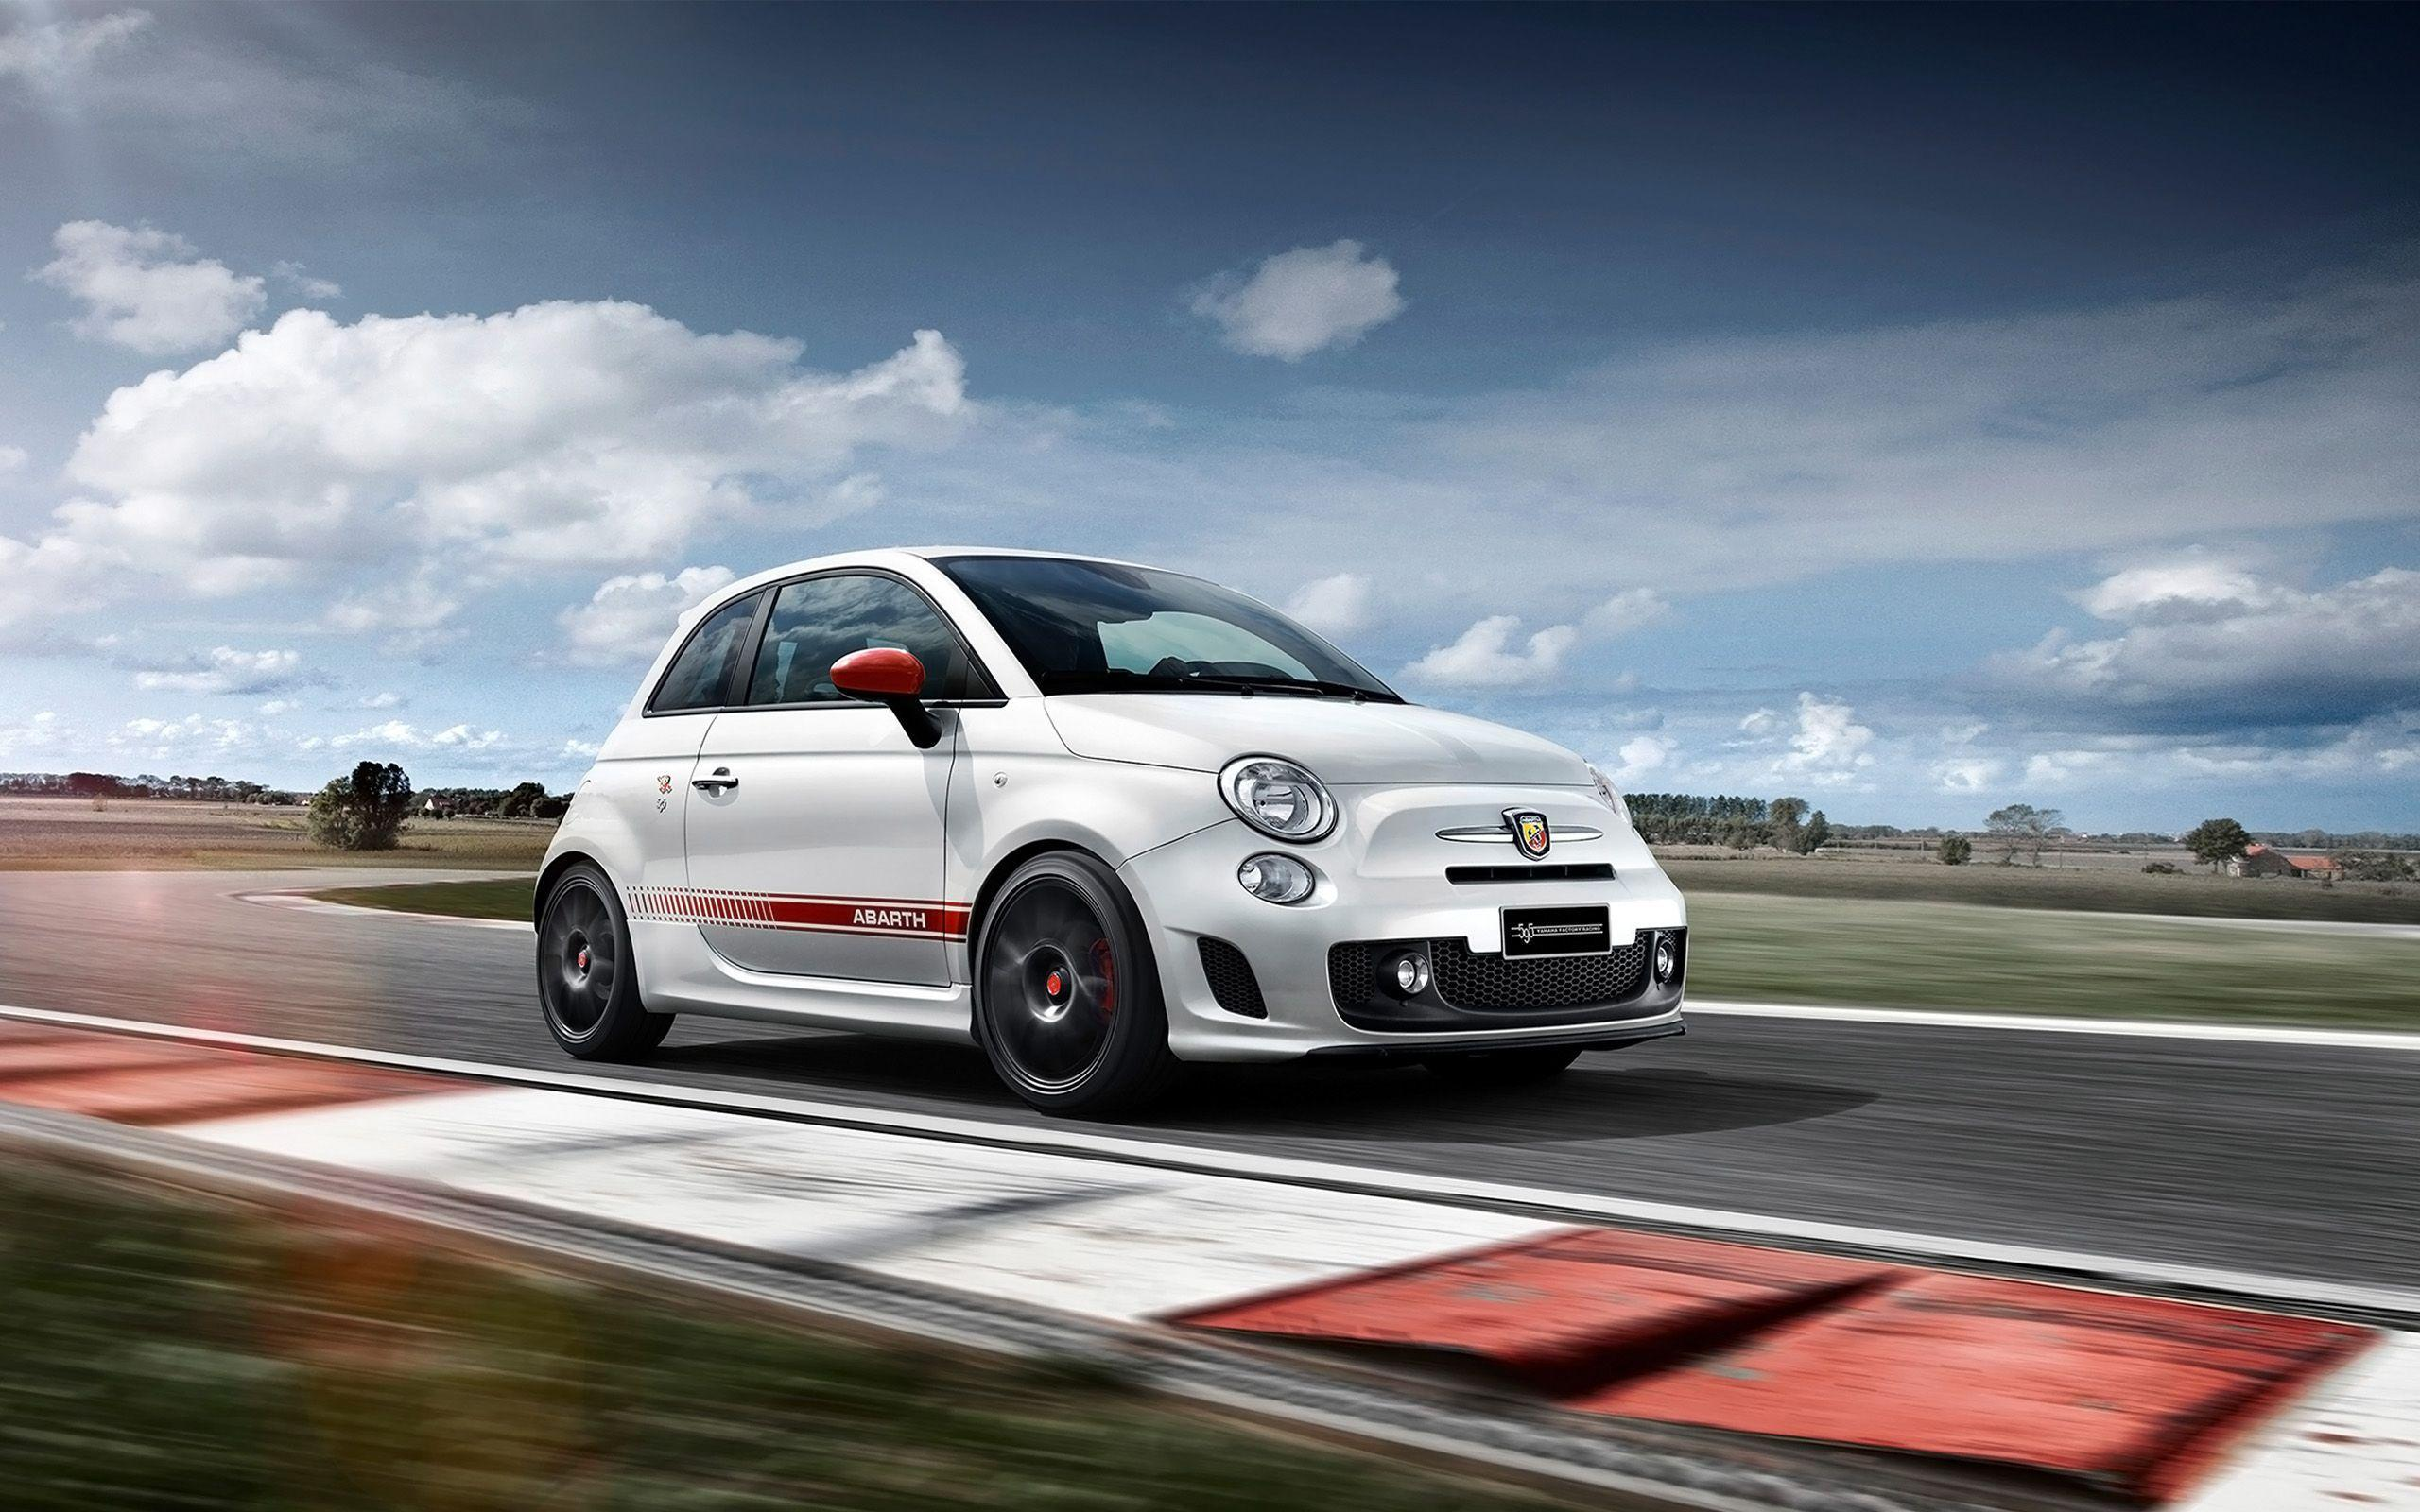 Fiat Car Wallpapers - Page 1 - HD Car Wallpapers